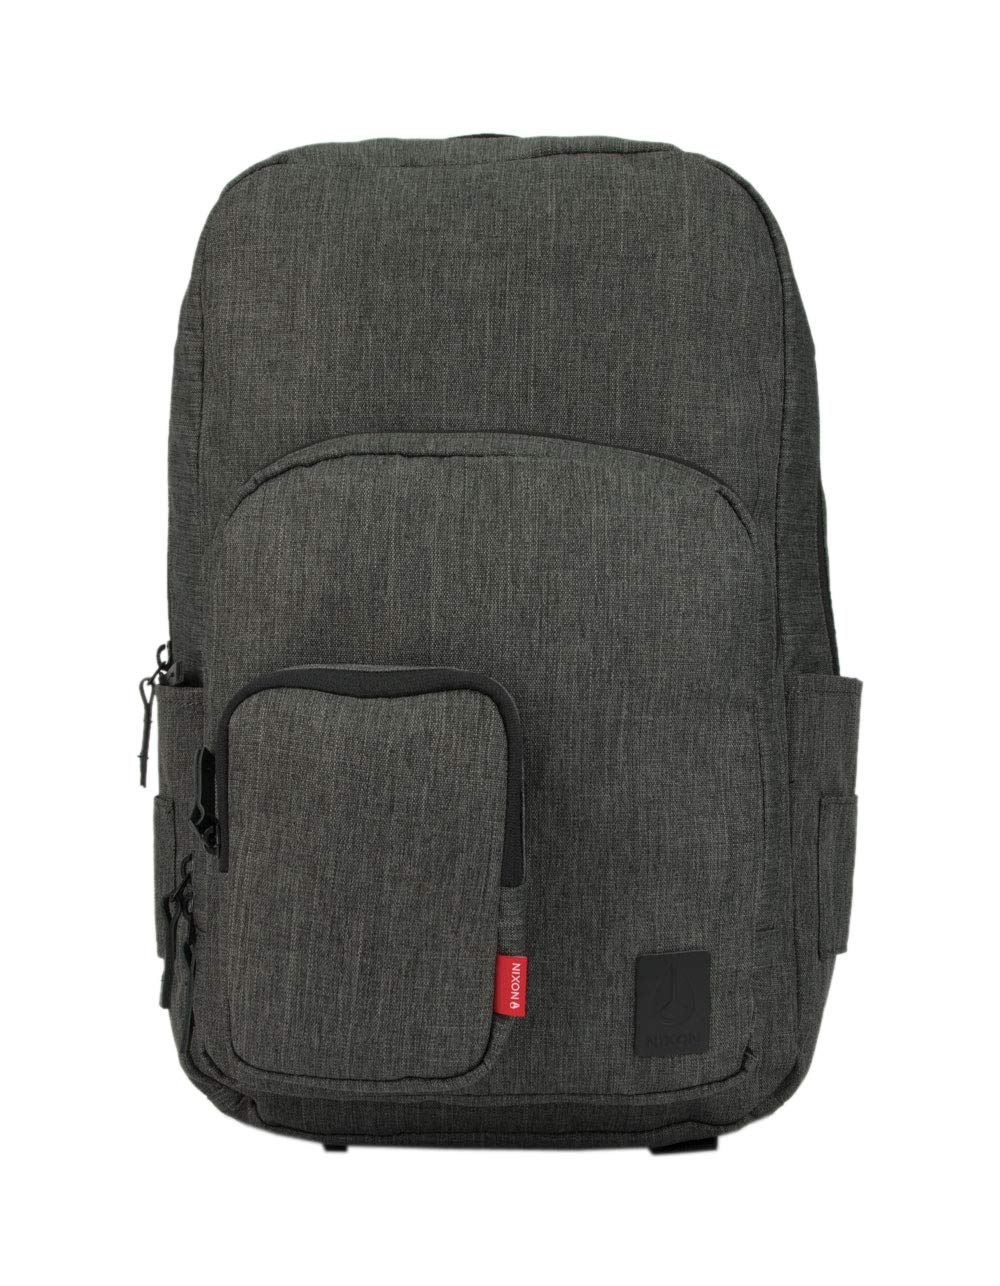 Daily 20L Backpack-Charcoal Heather by NIXON